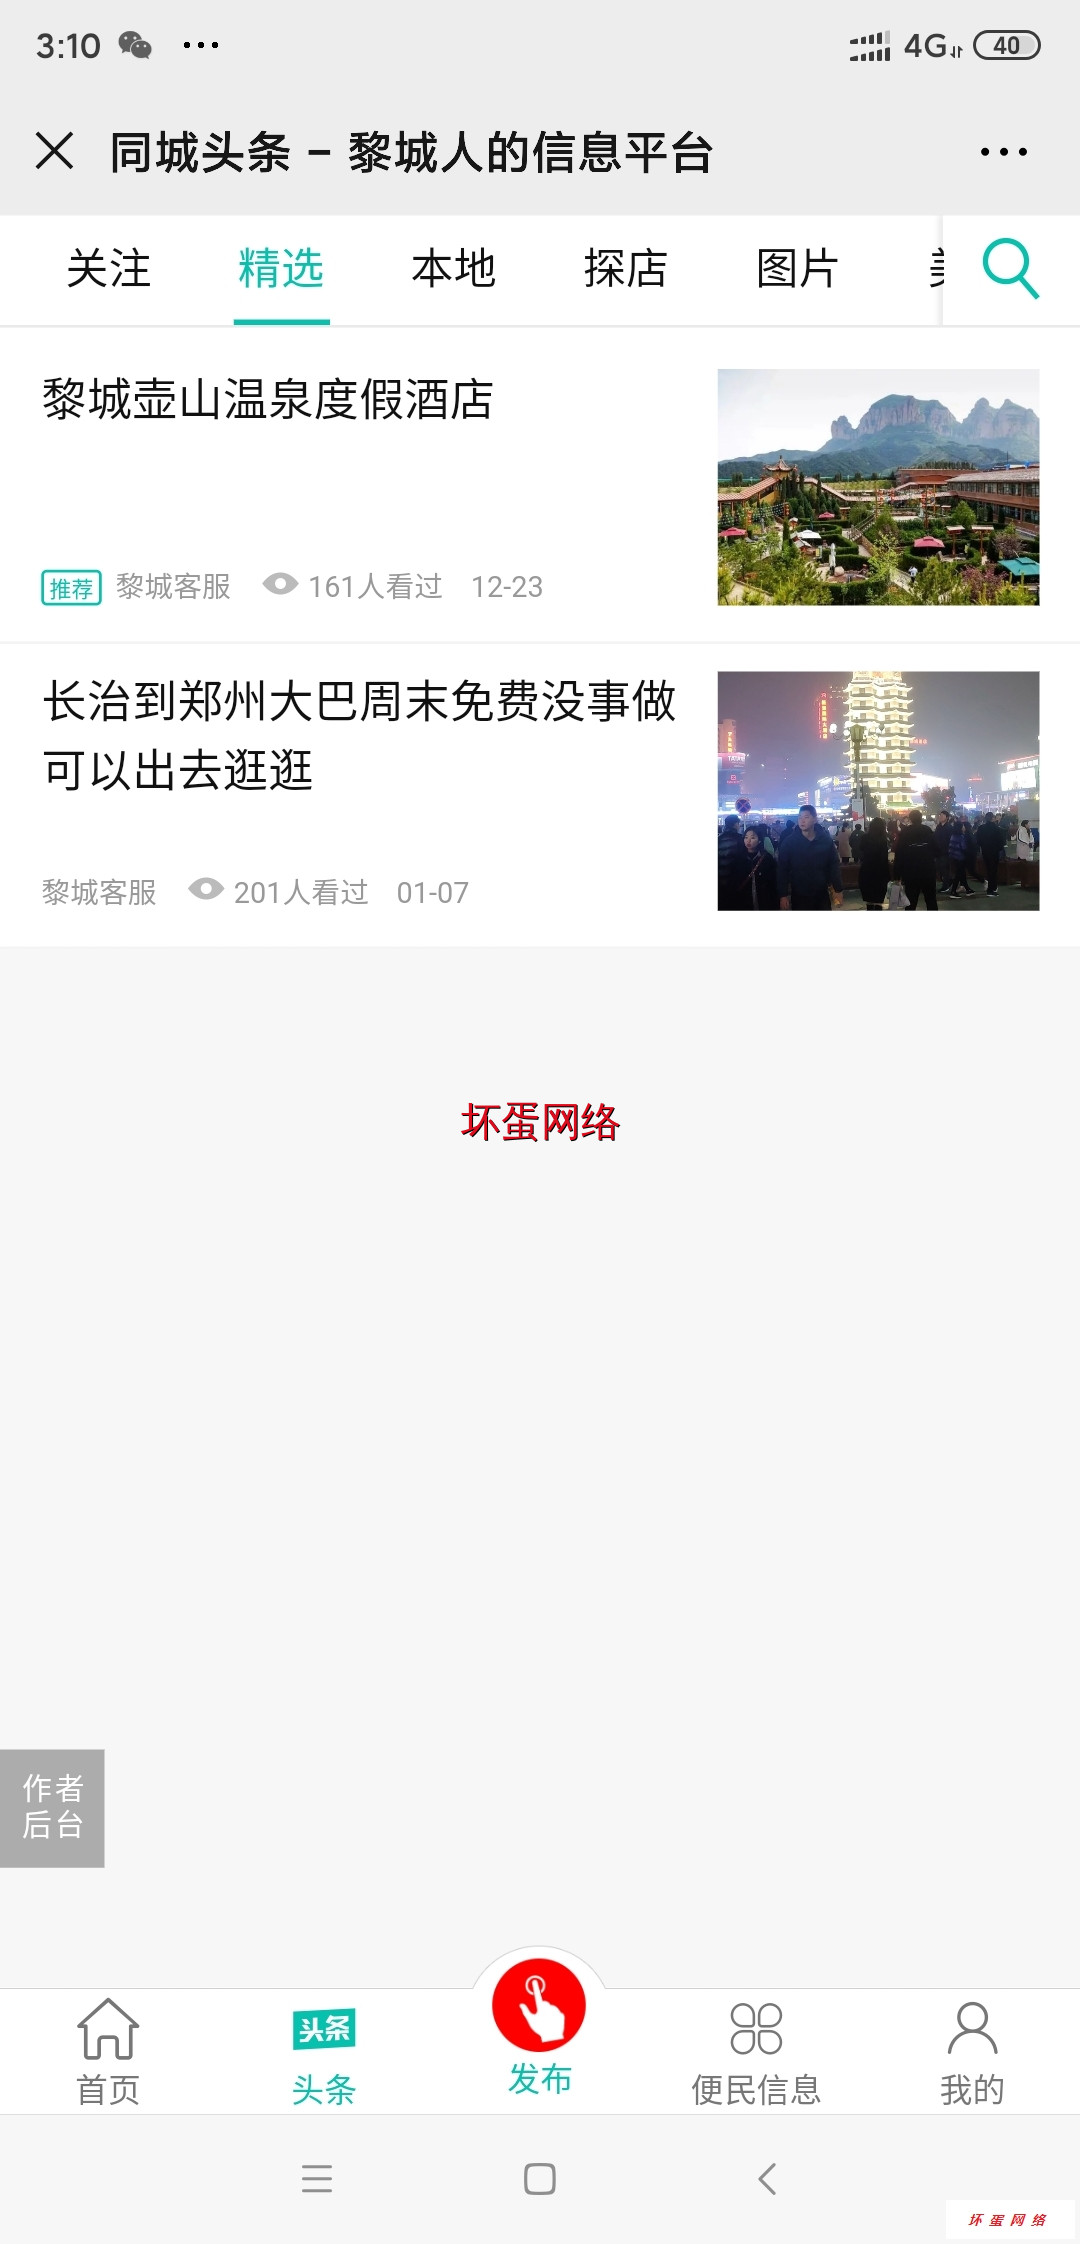 Screenshot_2020-01-21-15-10-50-111_com.tencent.mm.jpg